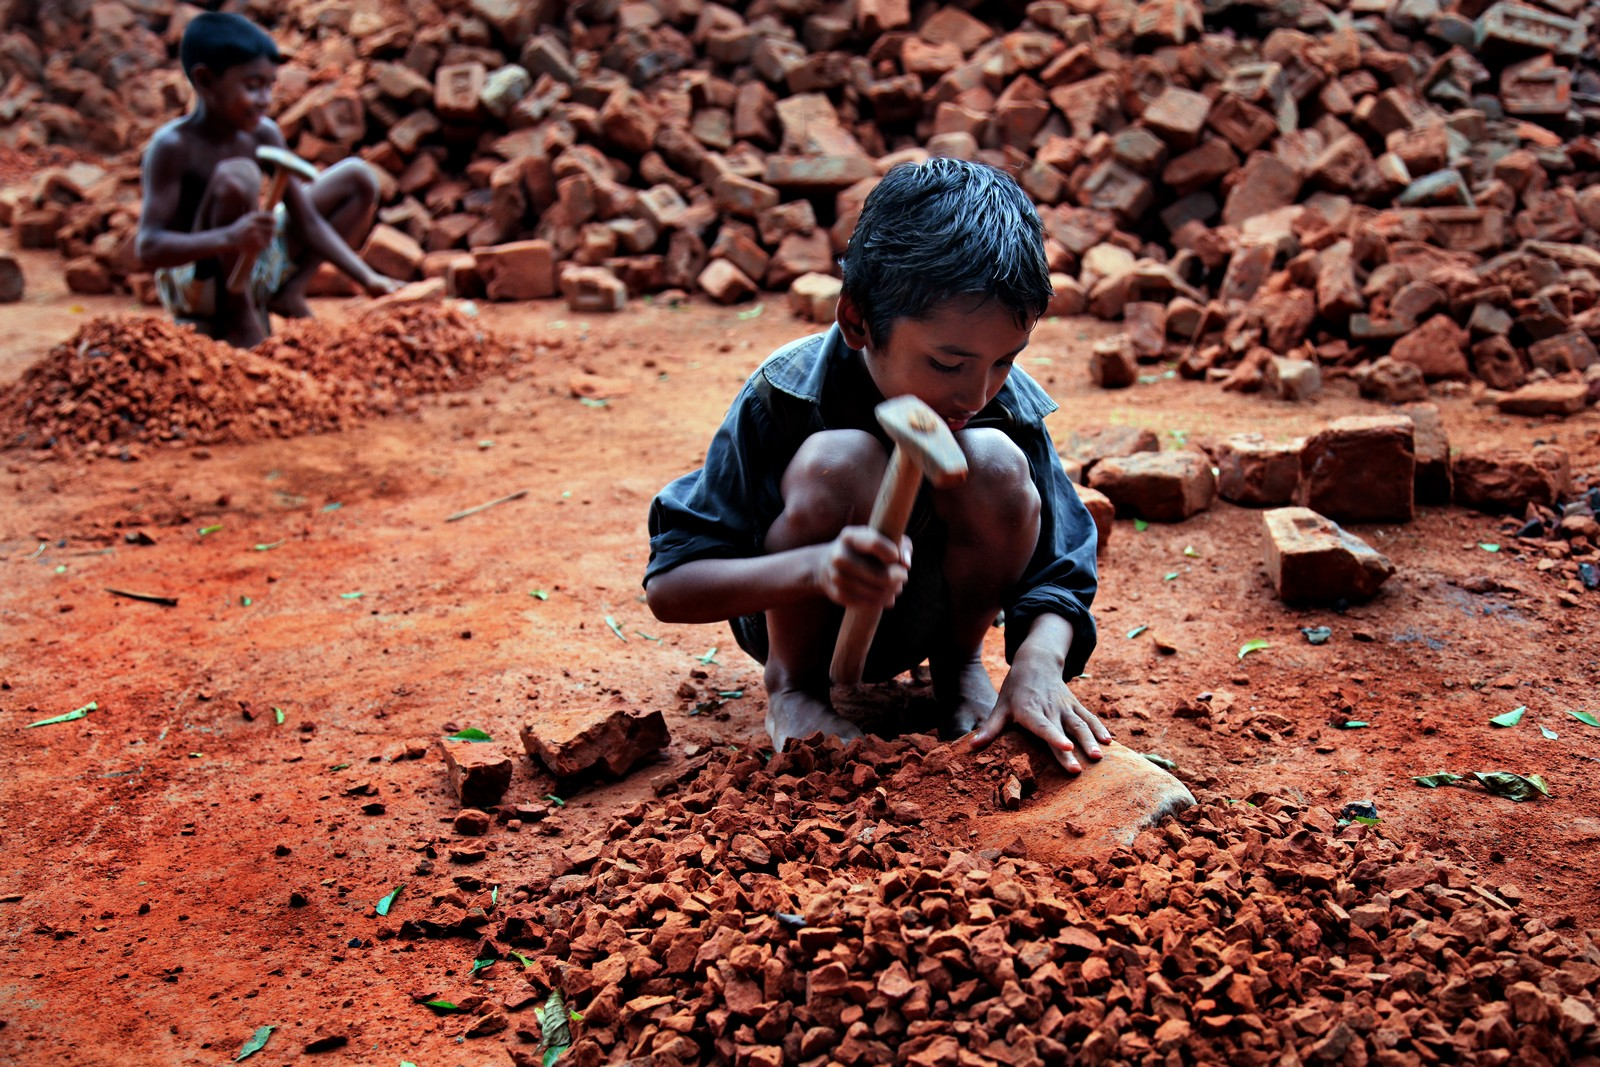 online thesis child labour Child labour thesis- data collection tools download child labour thesis- data collection tools uploaded by questions about domestic child labour 1.